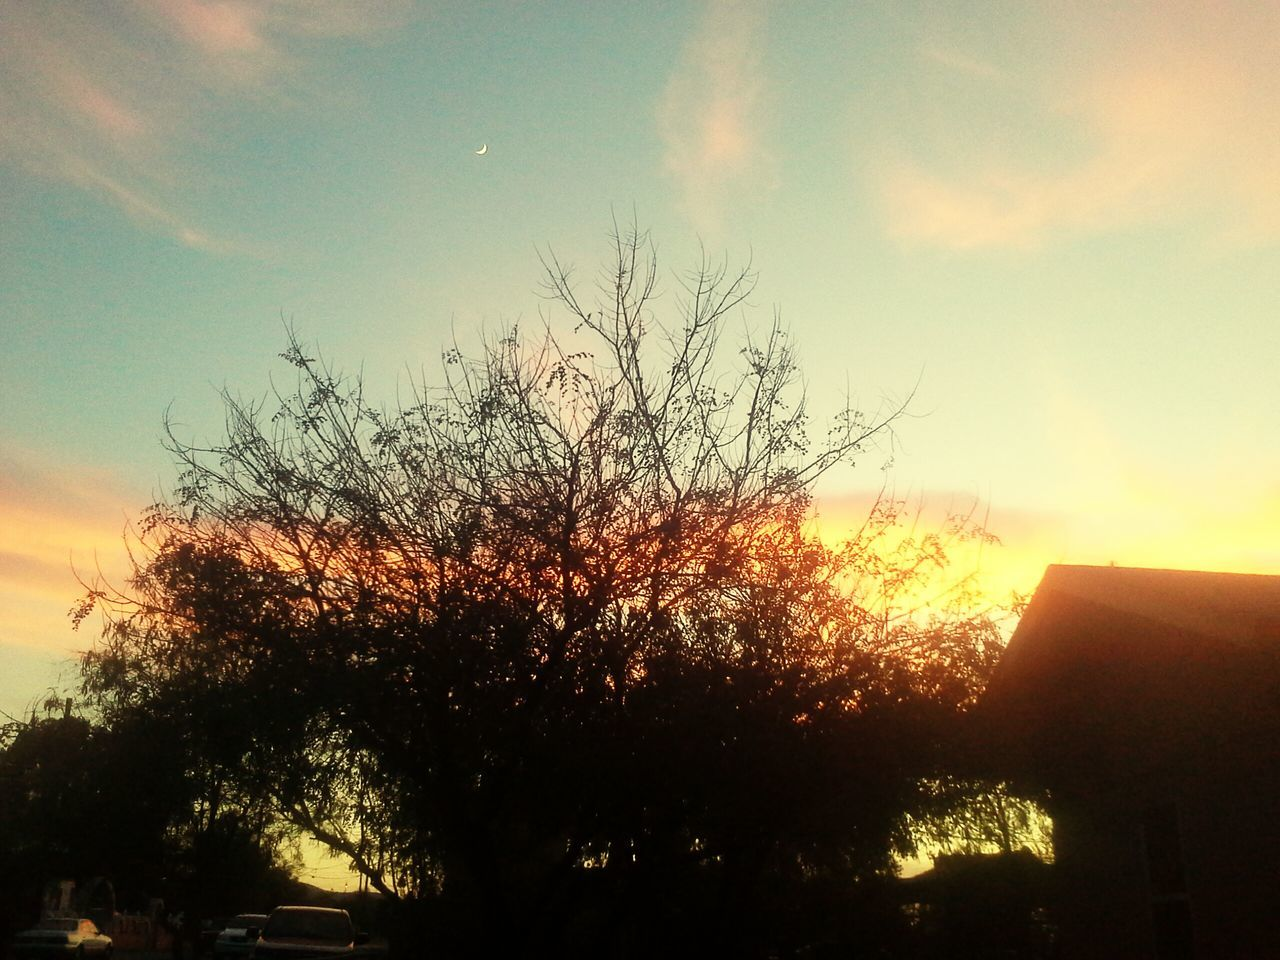 sunset, tree, sky, silhouette, sun, outdoors, growth, nature, no people, low angle view, beauty in nature, day